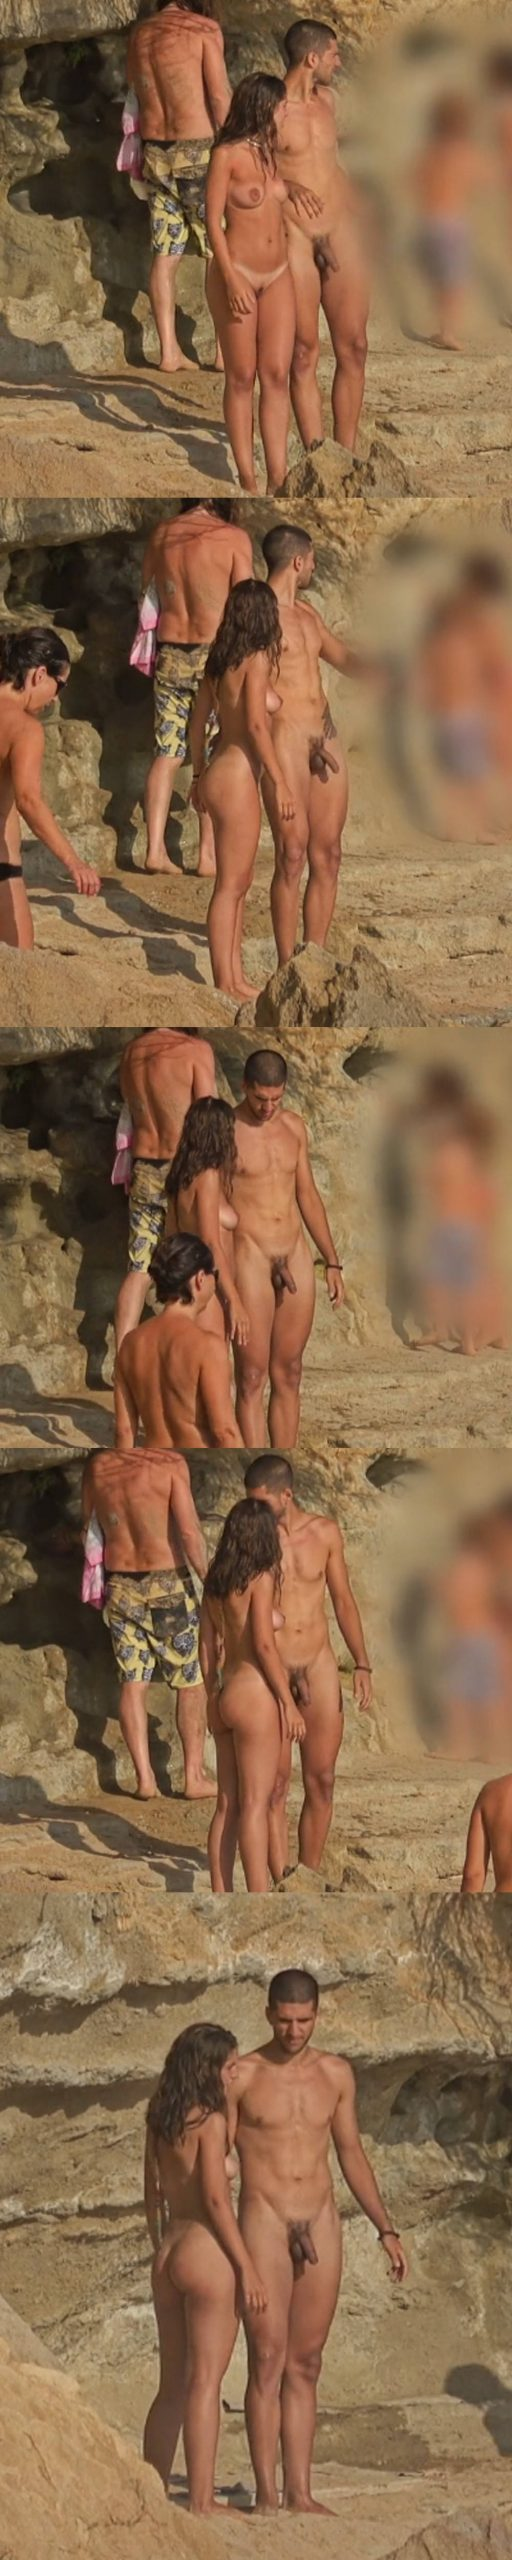 straight nudist guy caught with boner at the beach